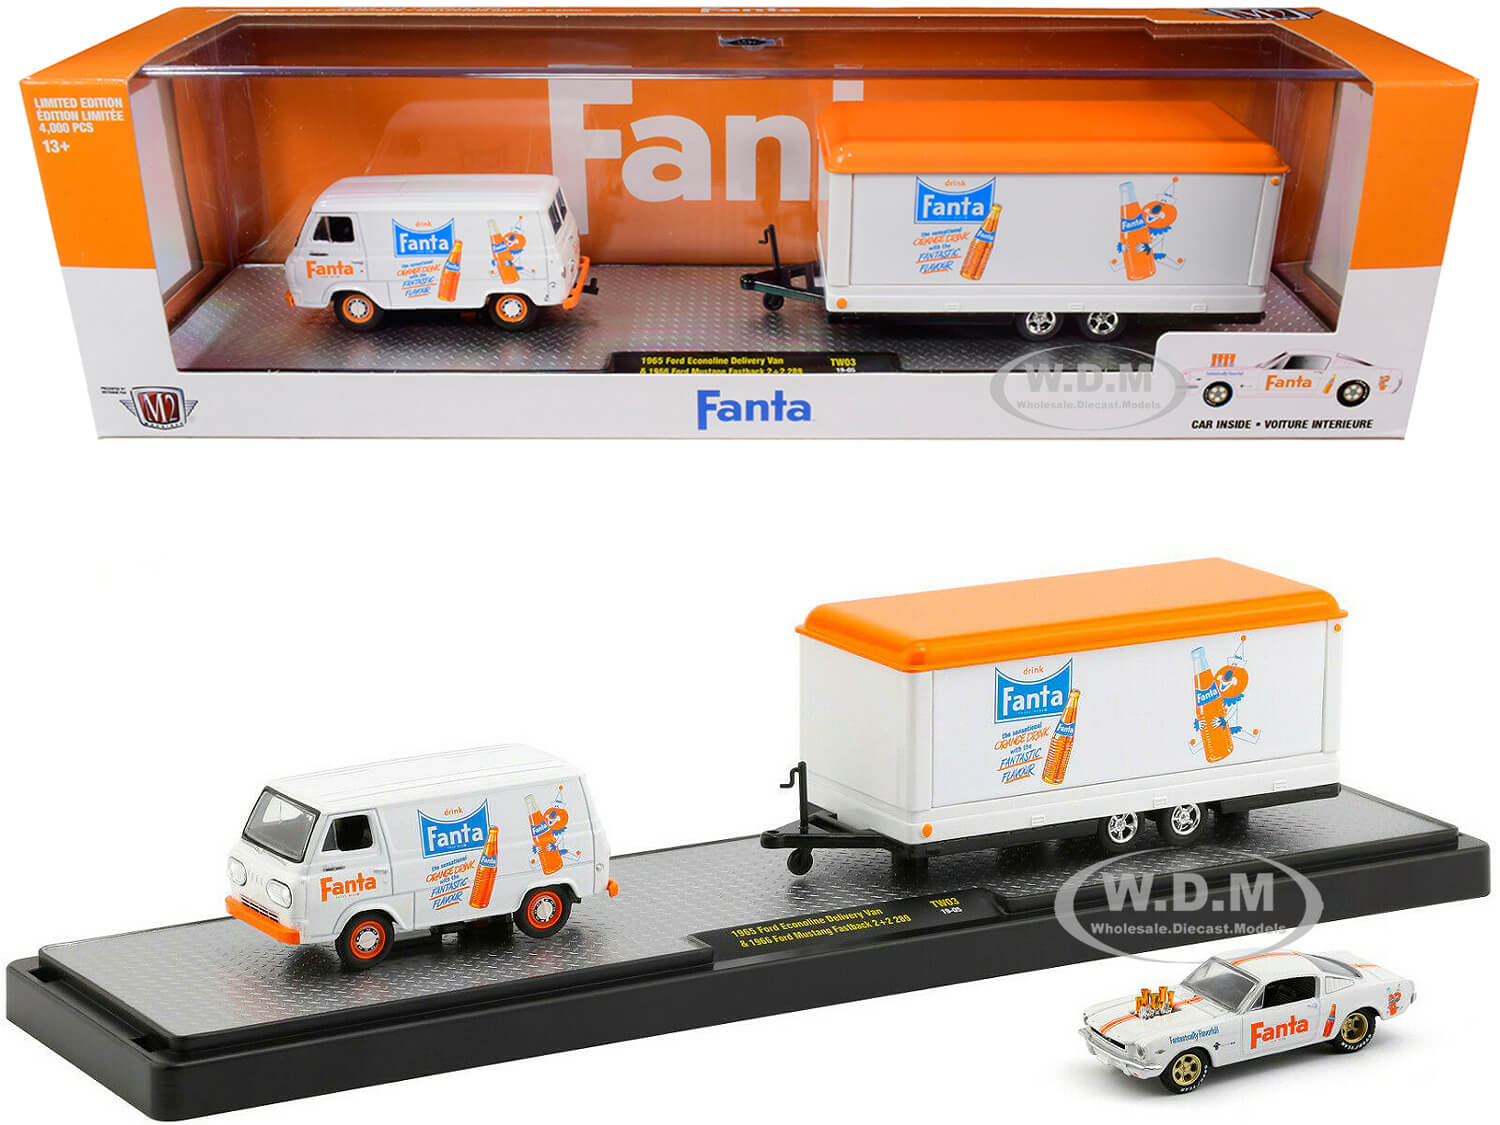 1965 Ford Econoline Delivery Van White with Trailer and 1966 Ford Mustang Fastback 22 289 White with Orange Stripes